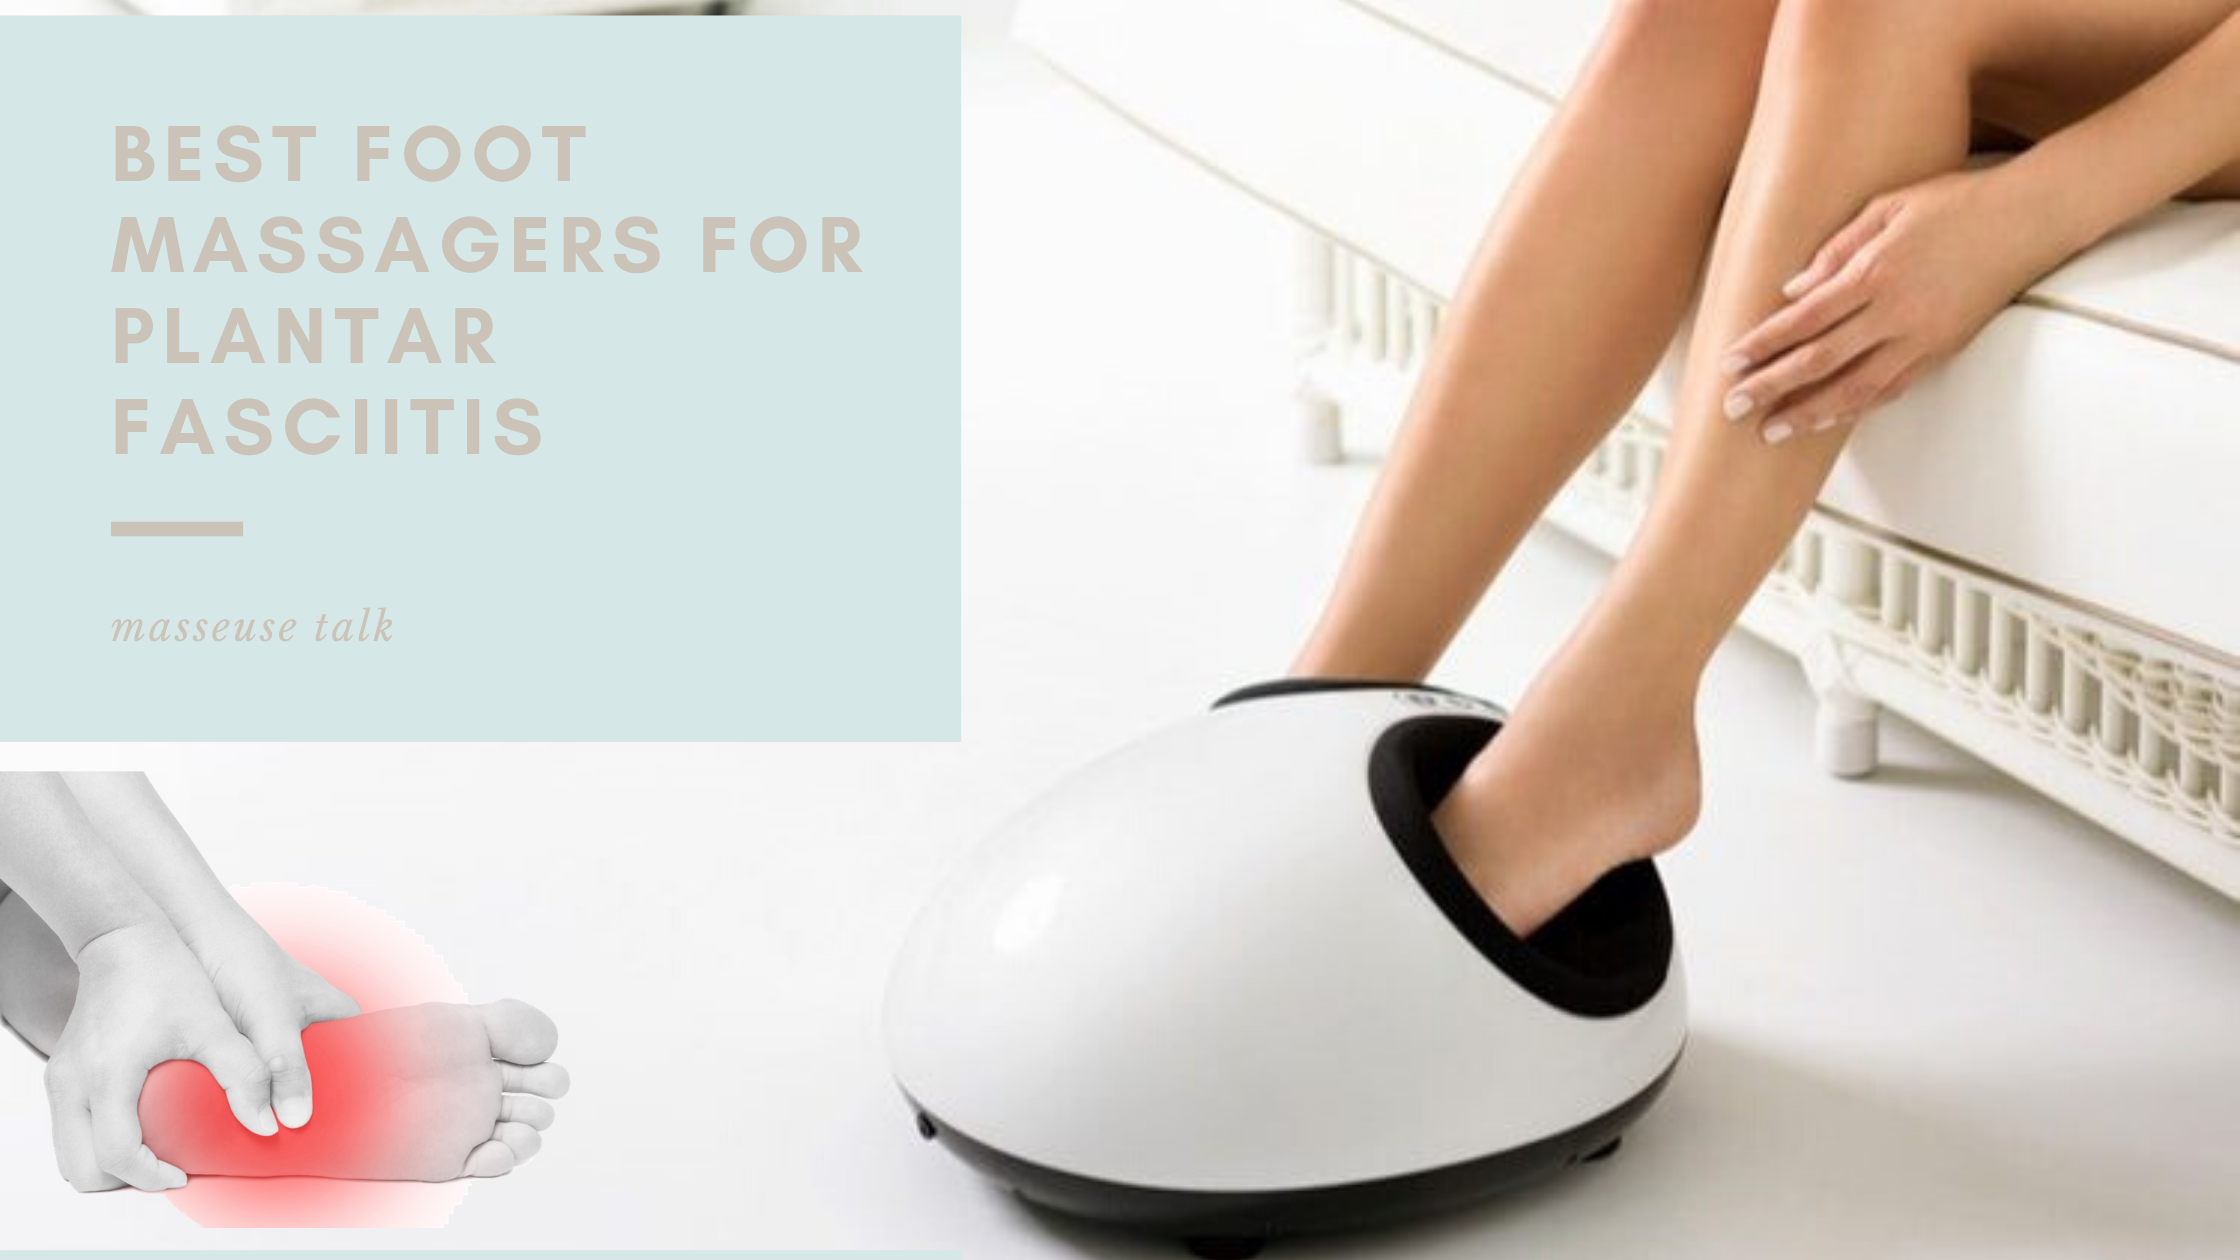 Foot Massager for Plantar Fasciitis